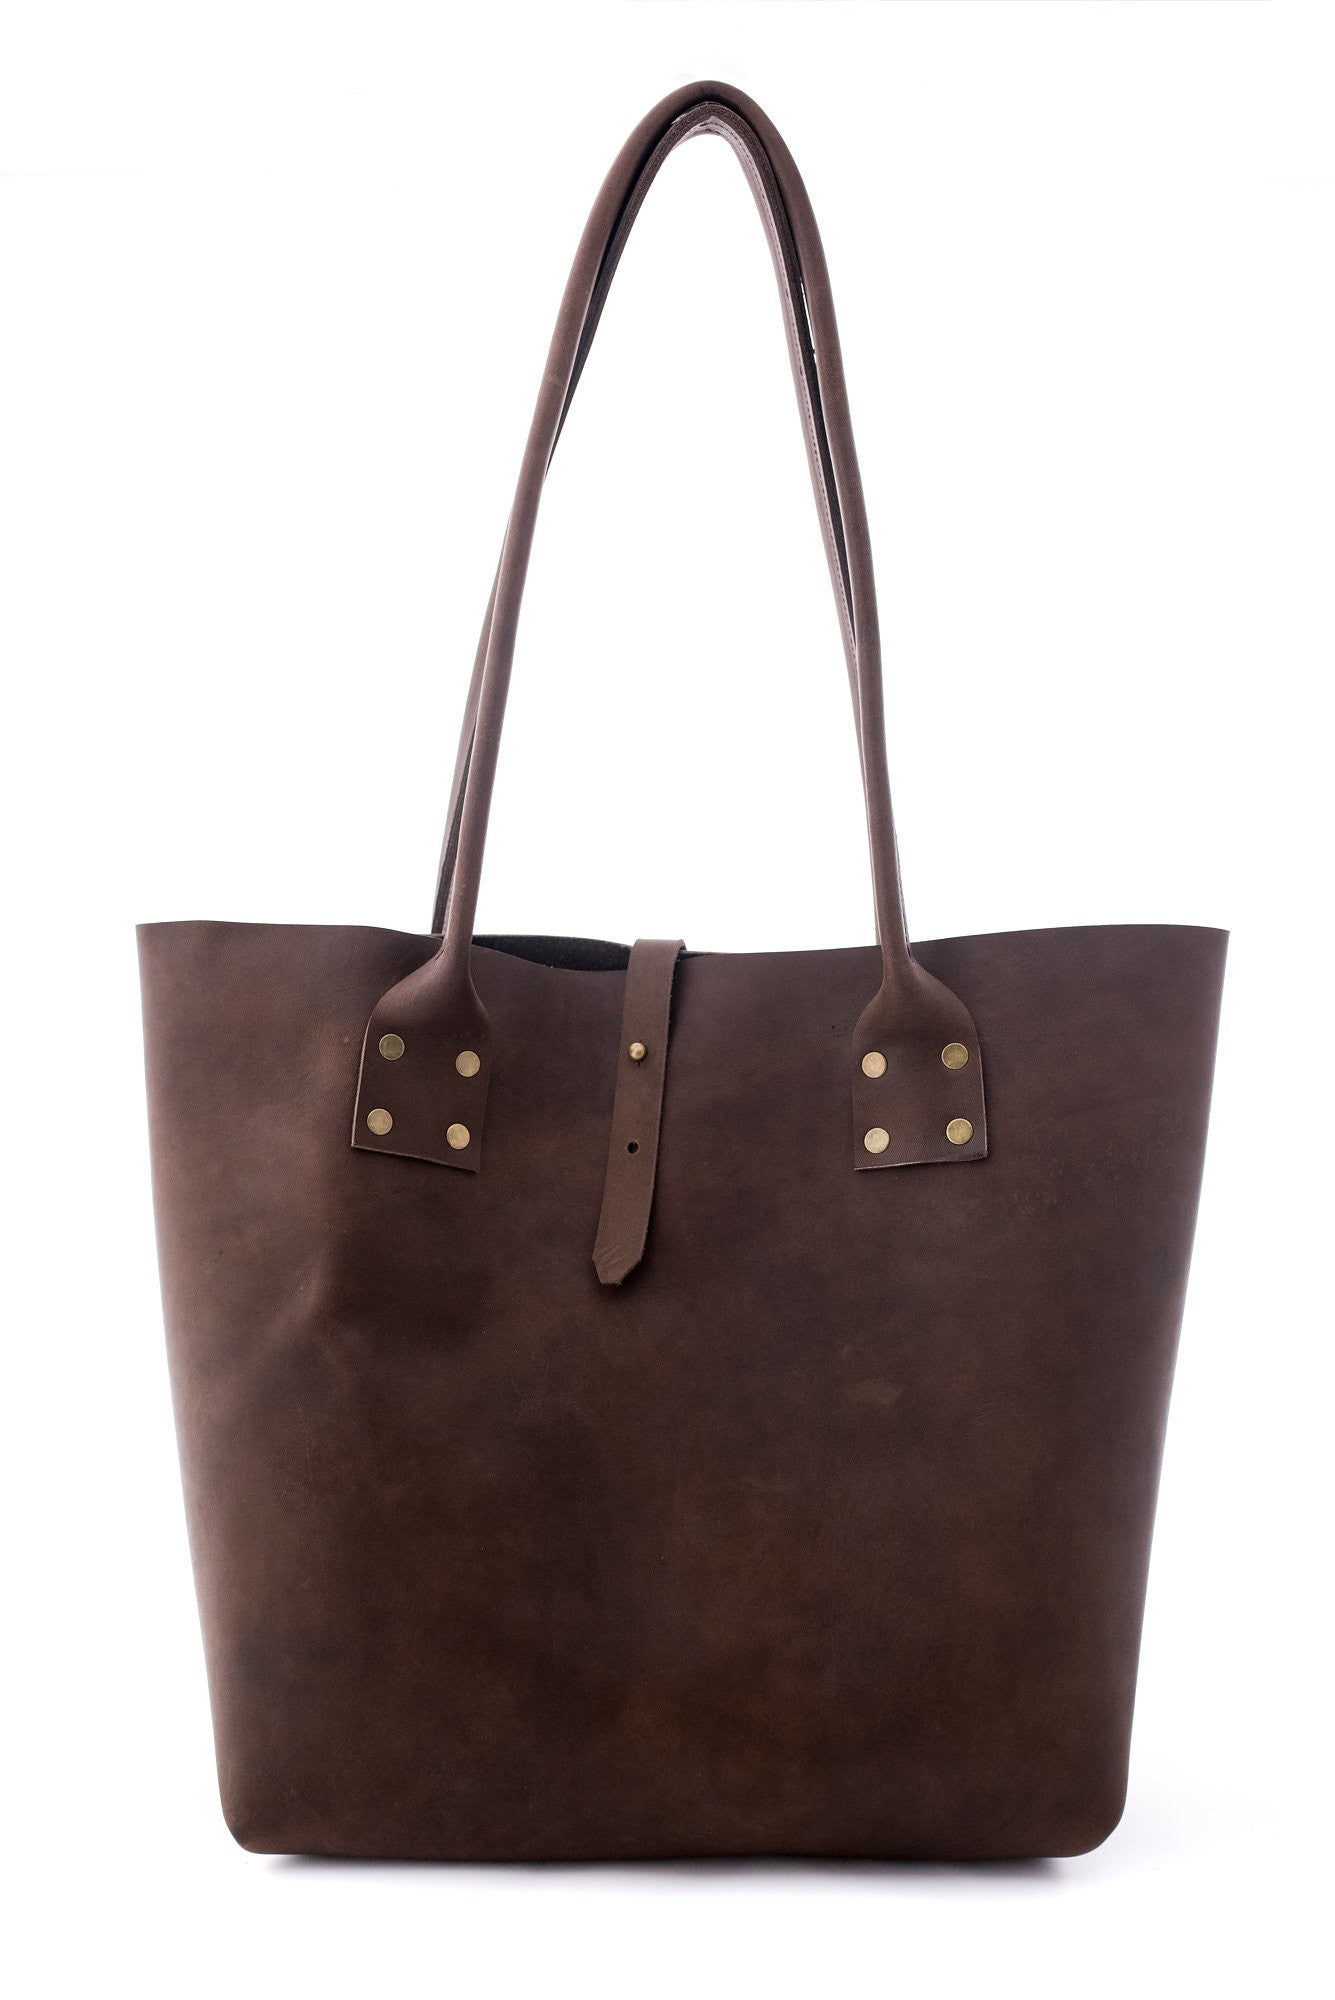 Refined Tote in Dark Brown Leather - handcrafted by Market Canvas Leather in Tofino, BC, Canada